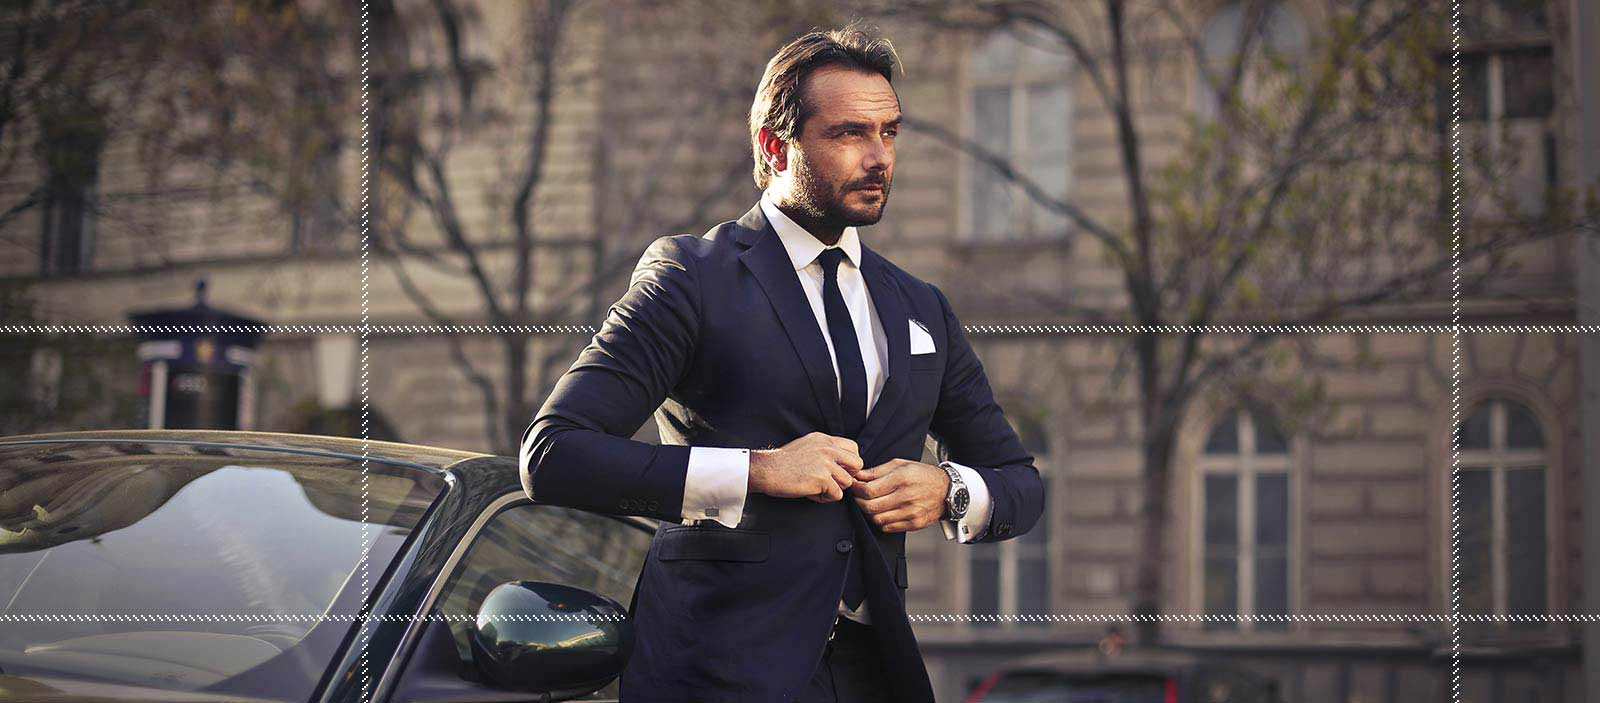 A brief history of suits